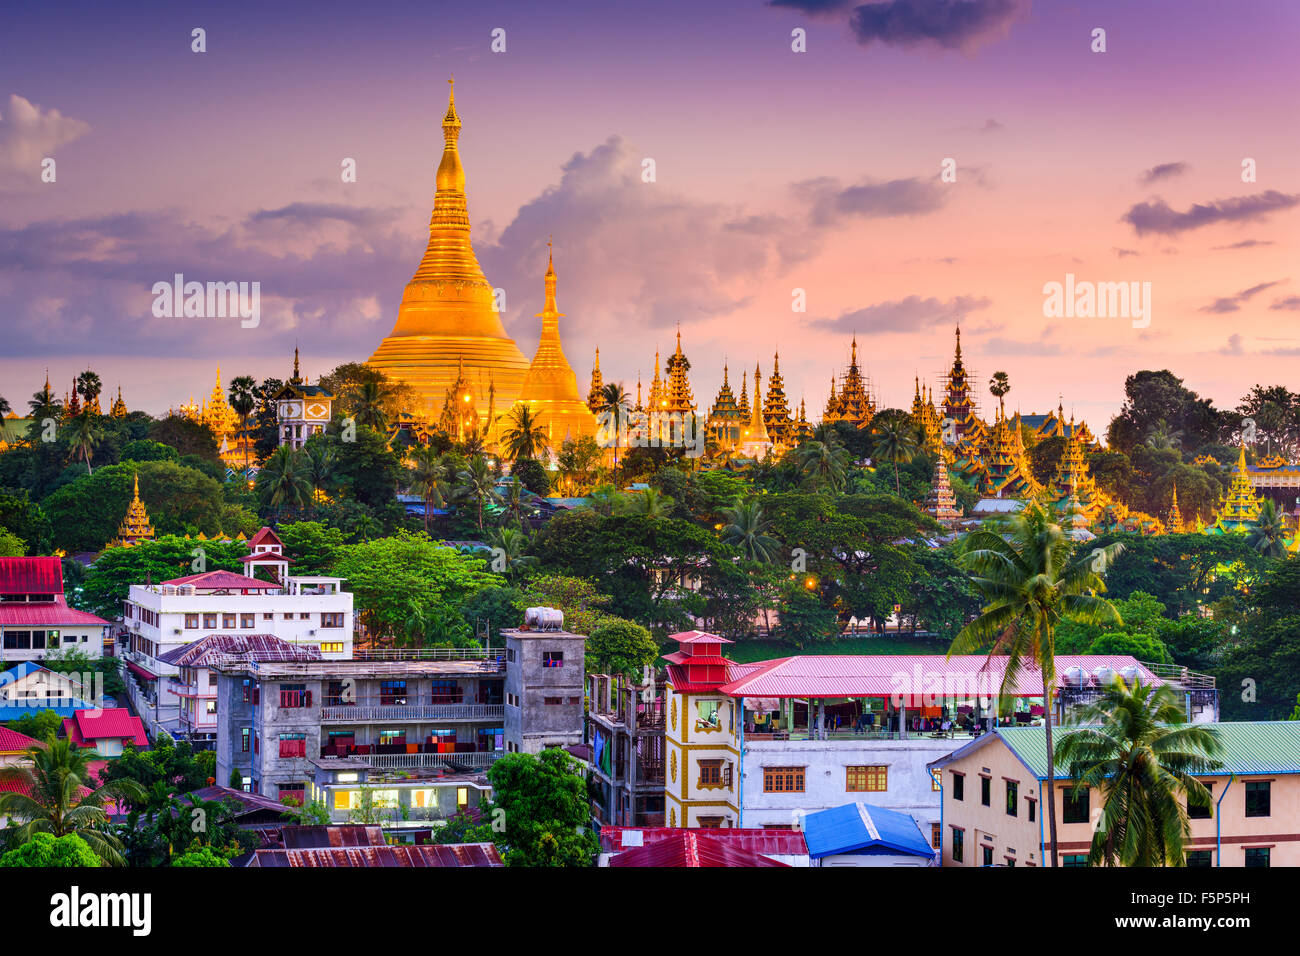 Yangon, Myanmar skyline at Shwedagon Pagoda. - Stock Image